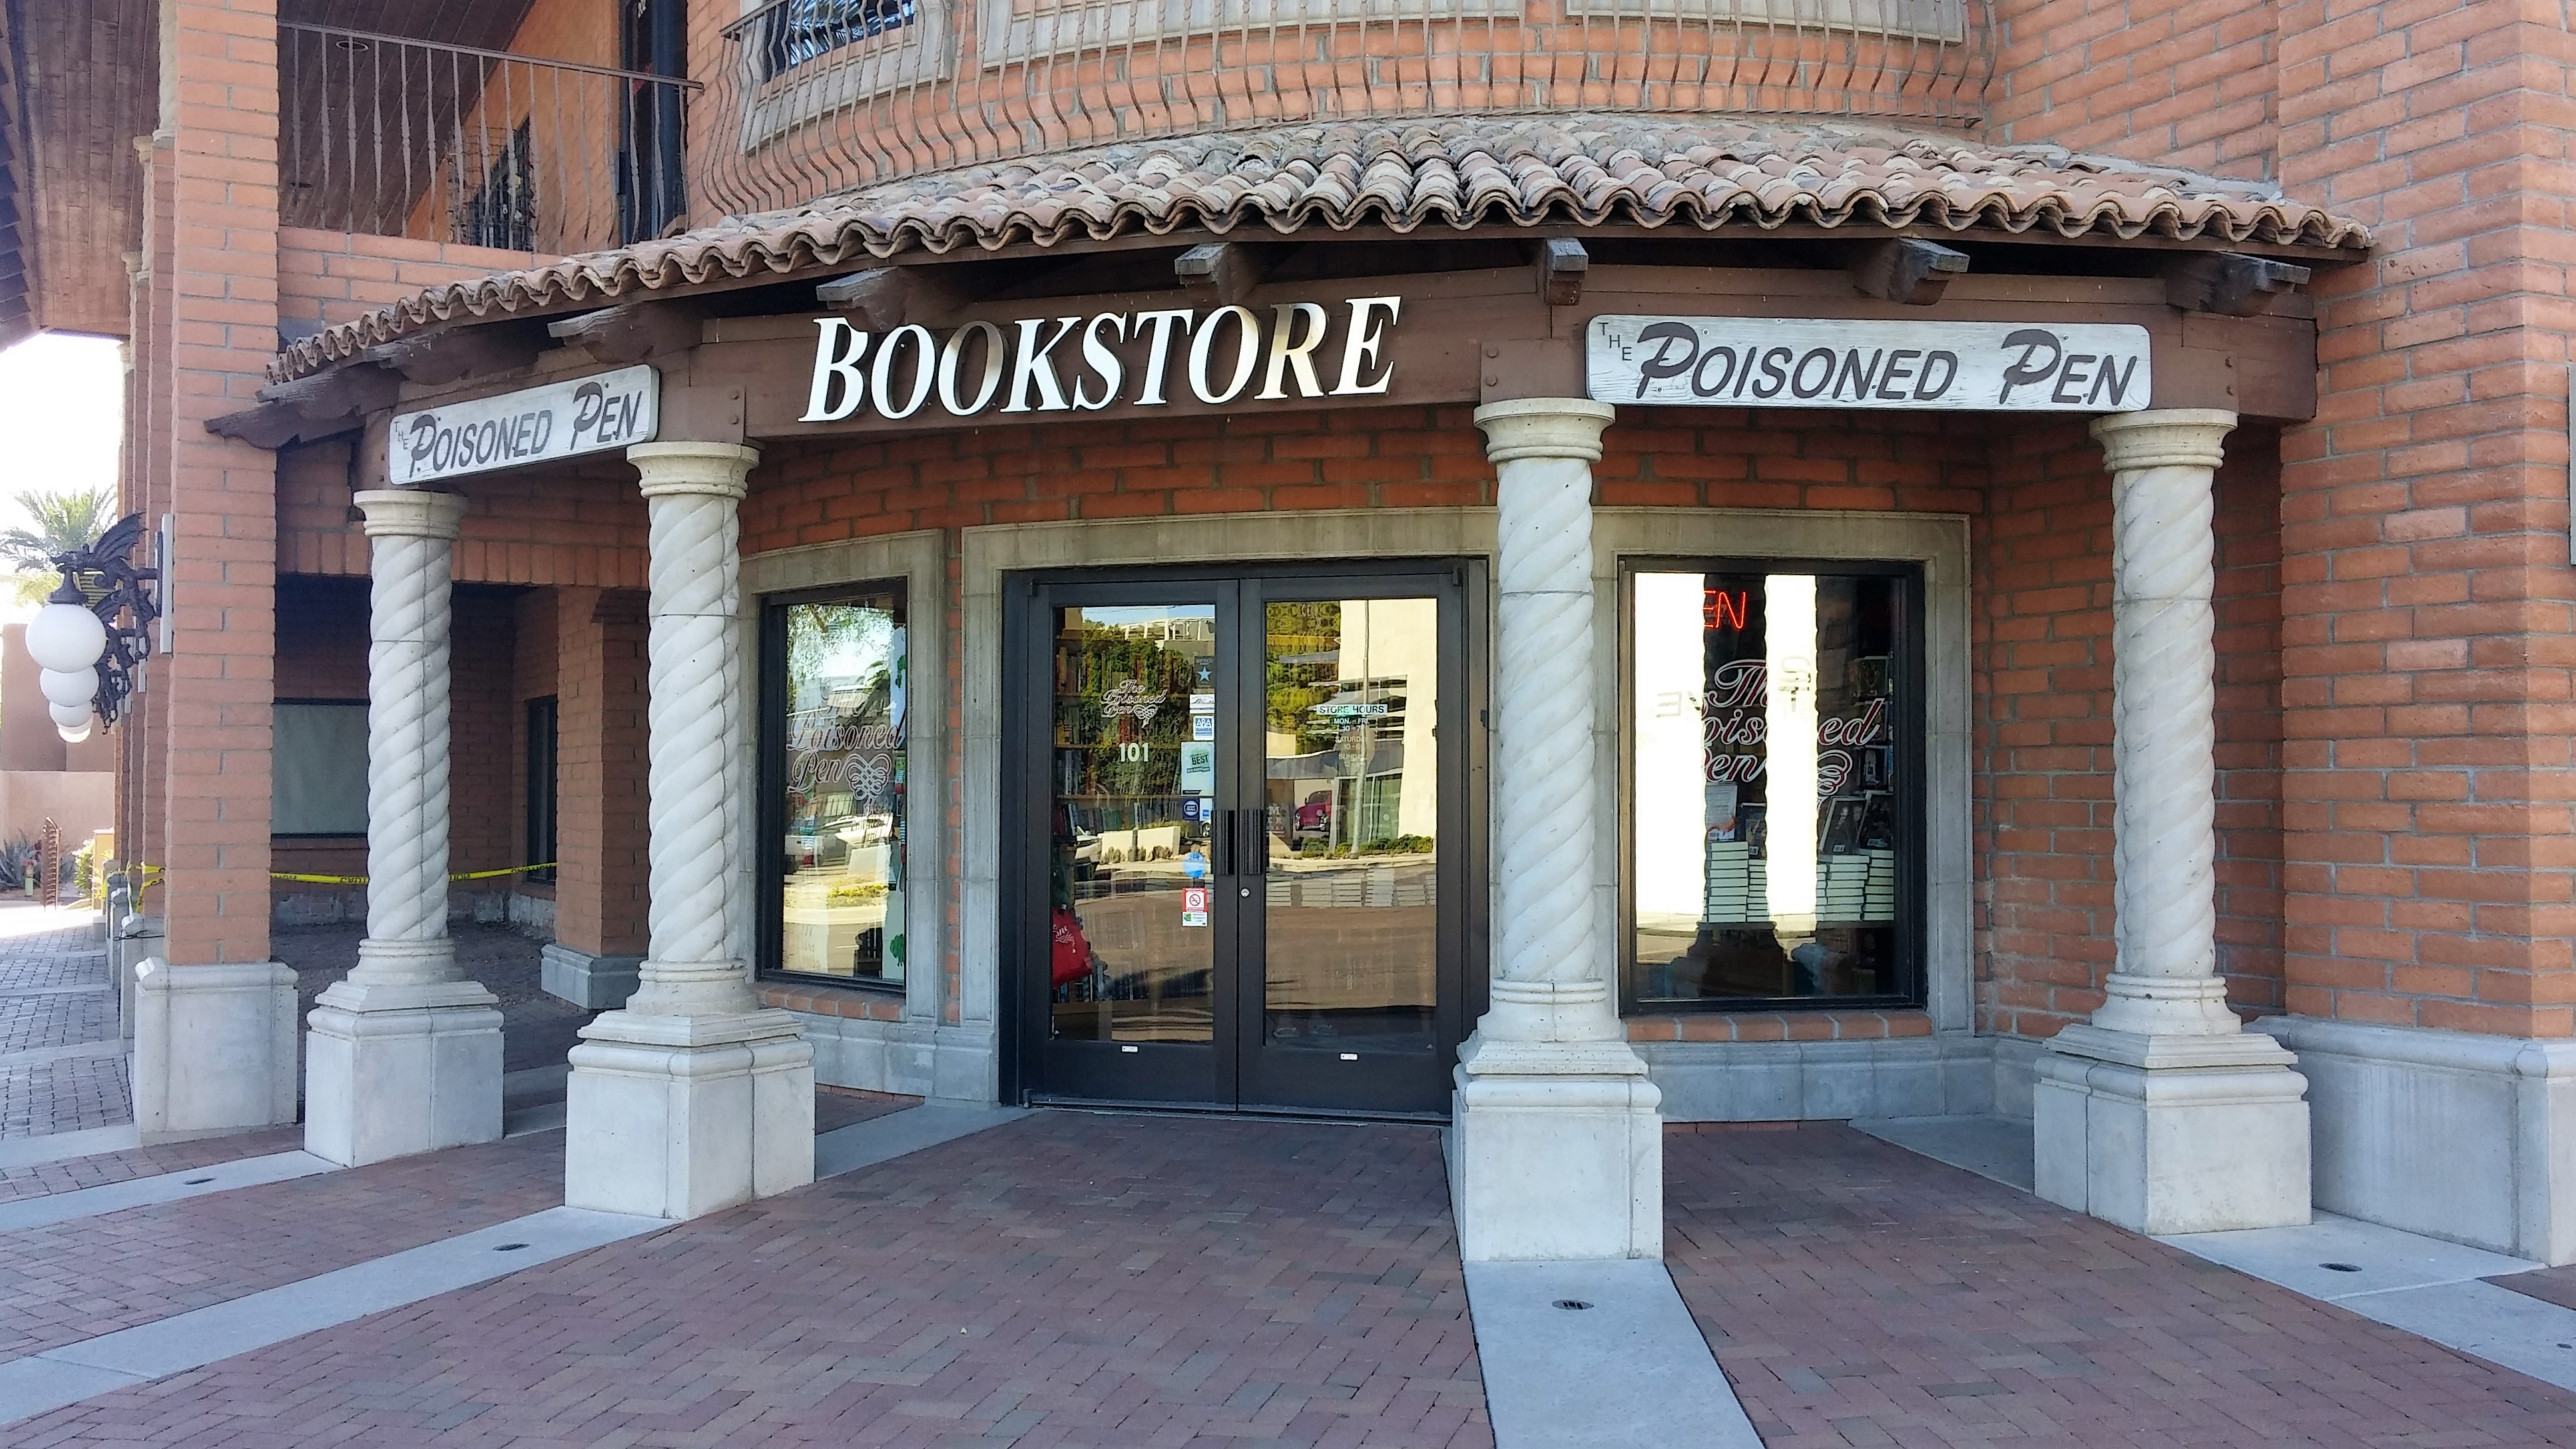 Then it was off to scottsdale az for a conversation and signing at the famous